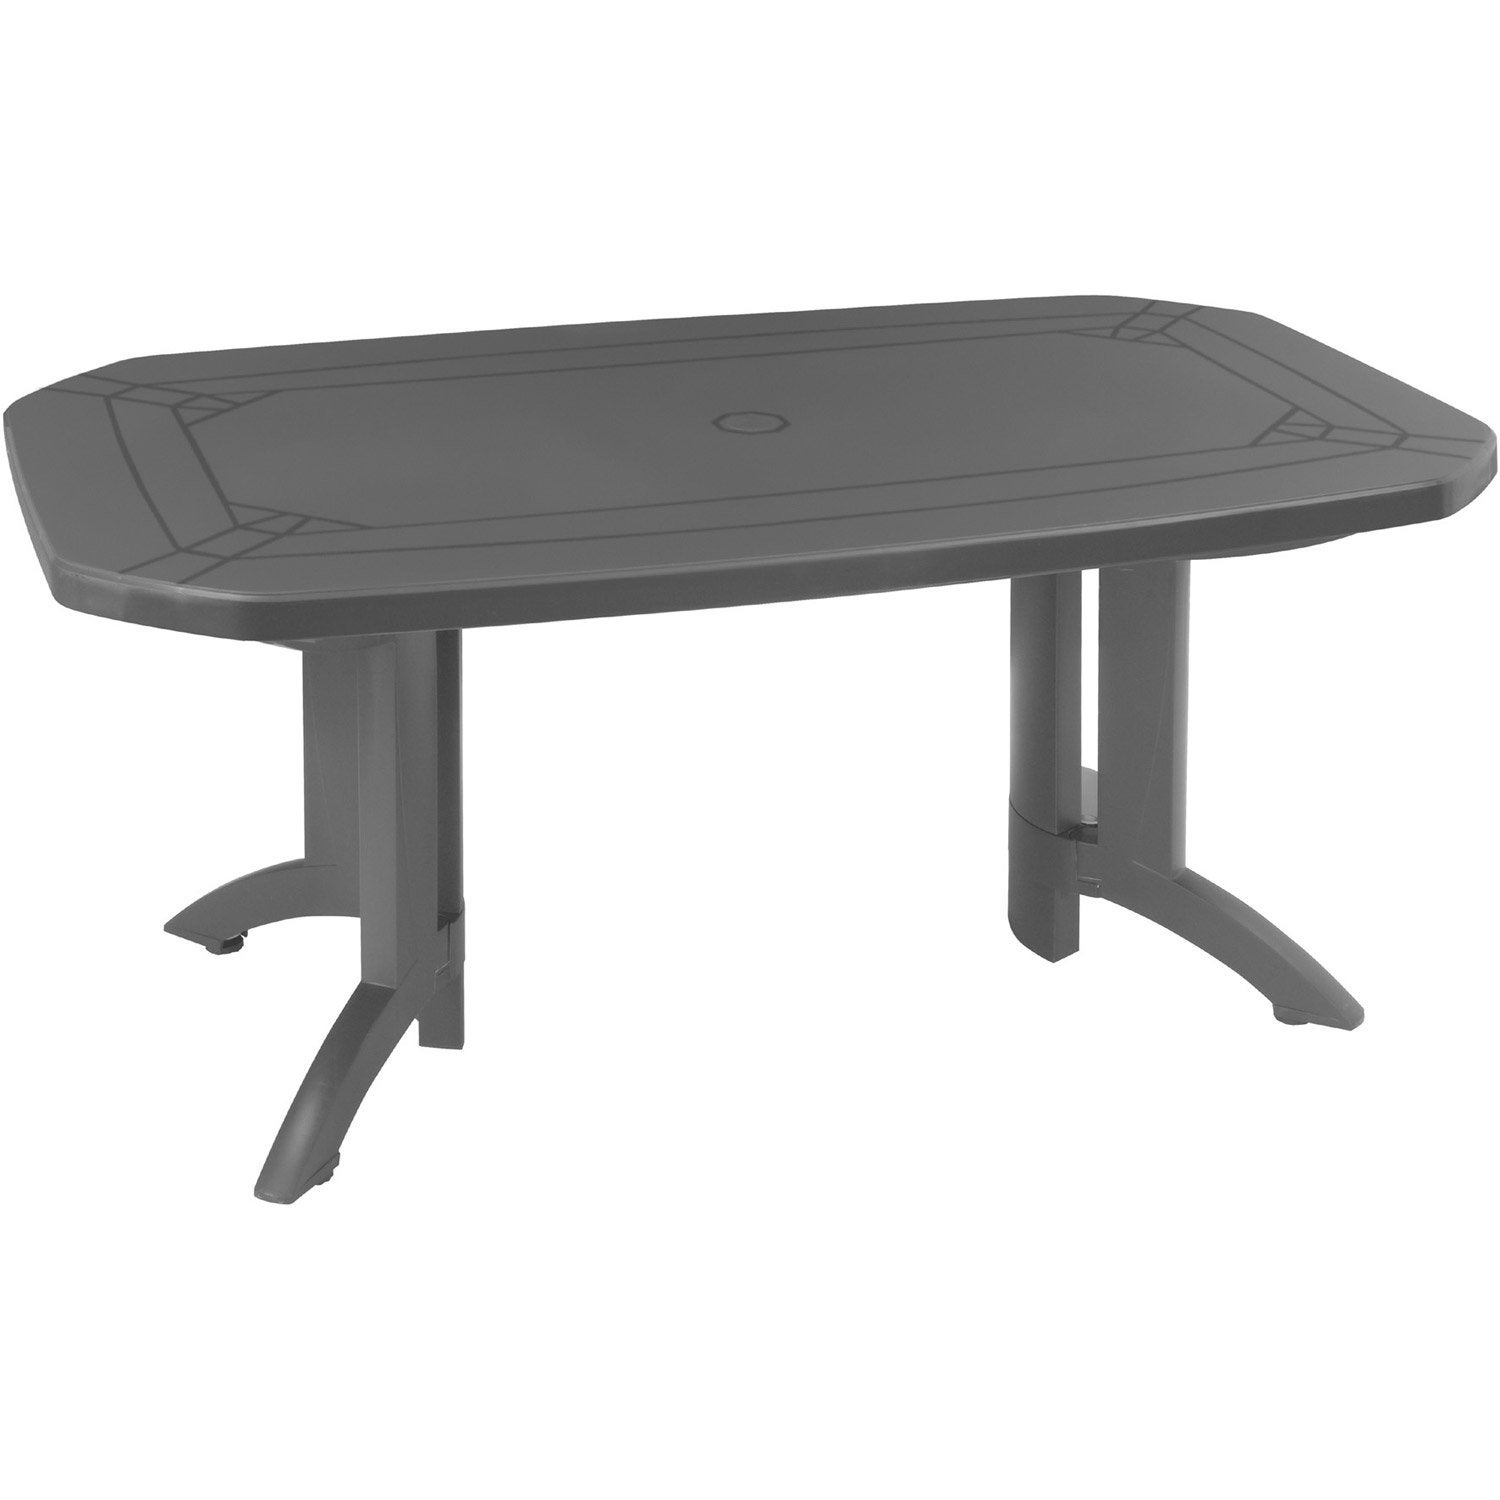 table de jardin grosfillex v ga rectangulaire anthracite 6. Black Bedroom Furniture Sets. Home Design Ideas